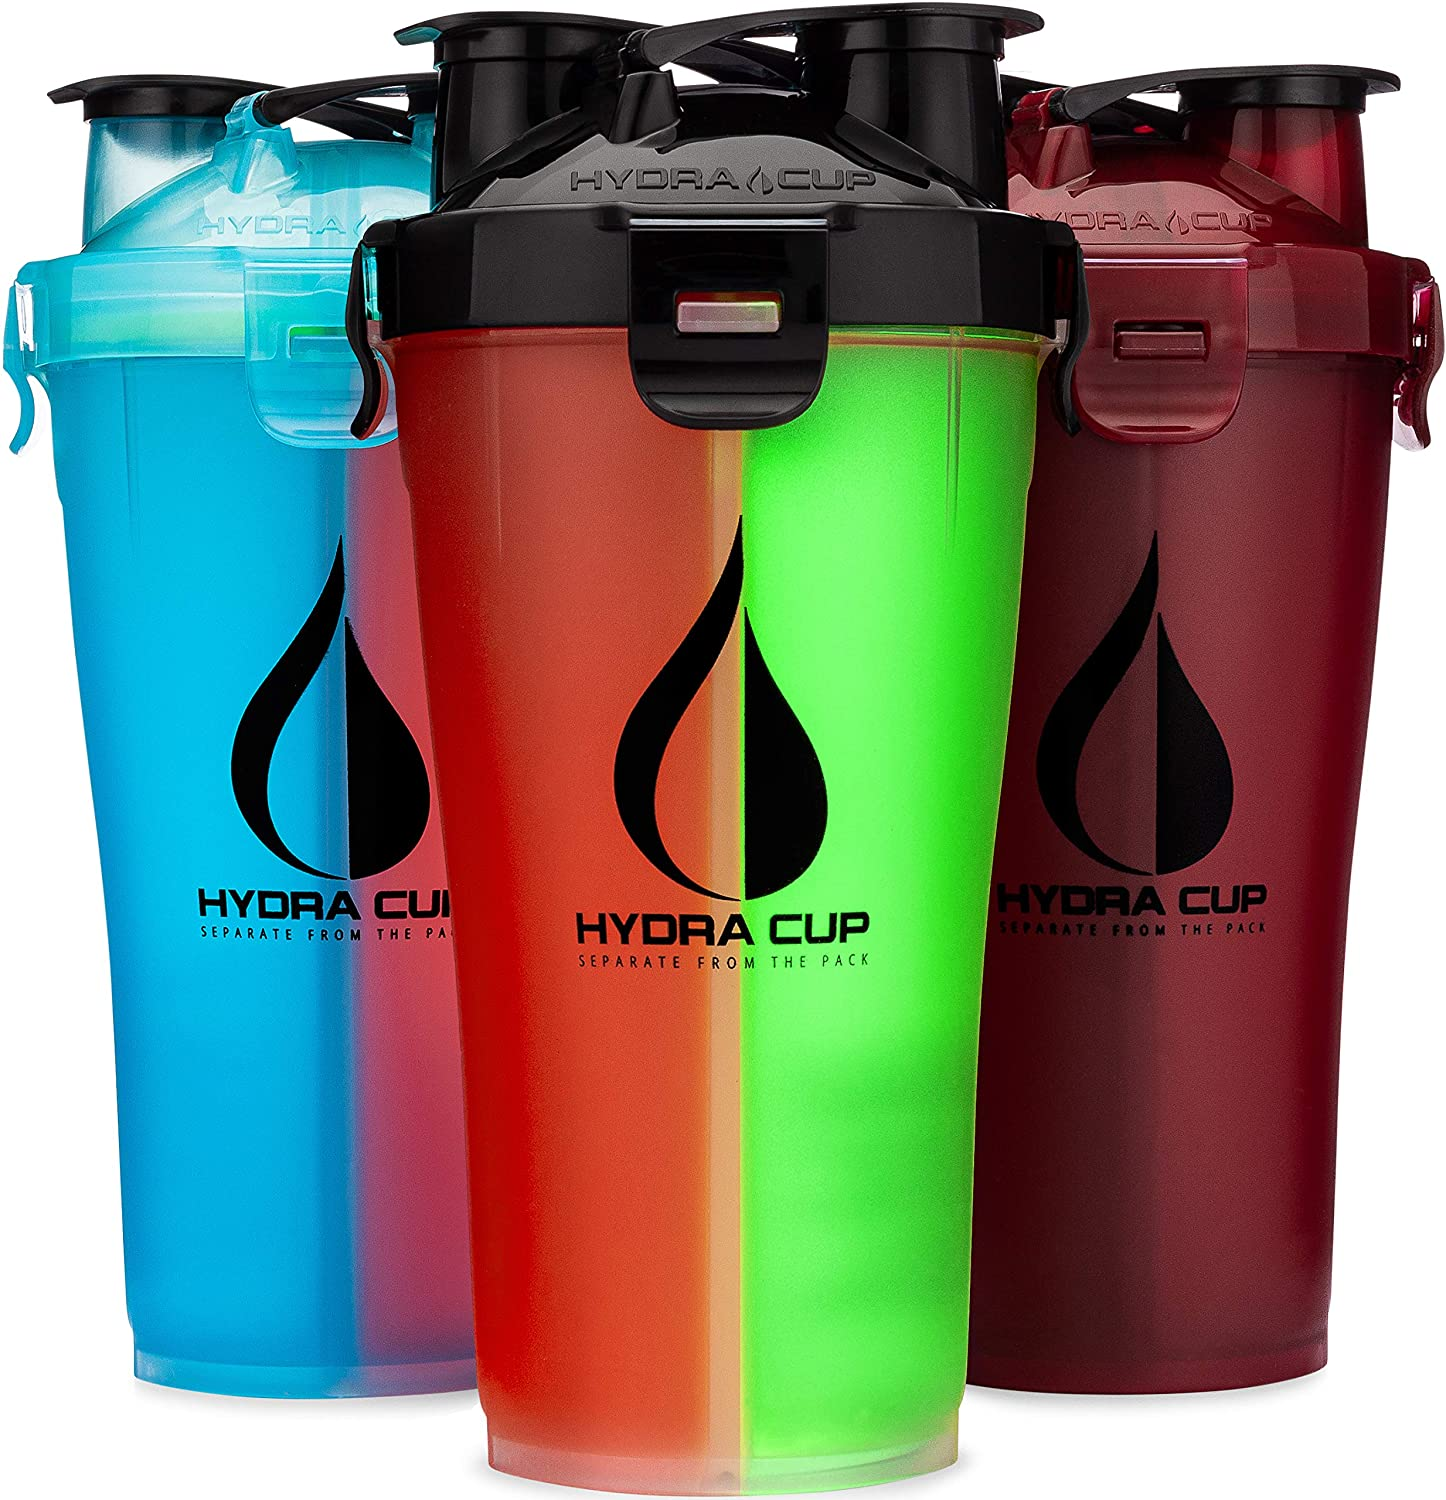 Hydra Cup 3 Pack 30oz Dual Shaker Bottle, Protein Shaker Cups for Pre & Post, Save Time